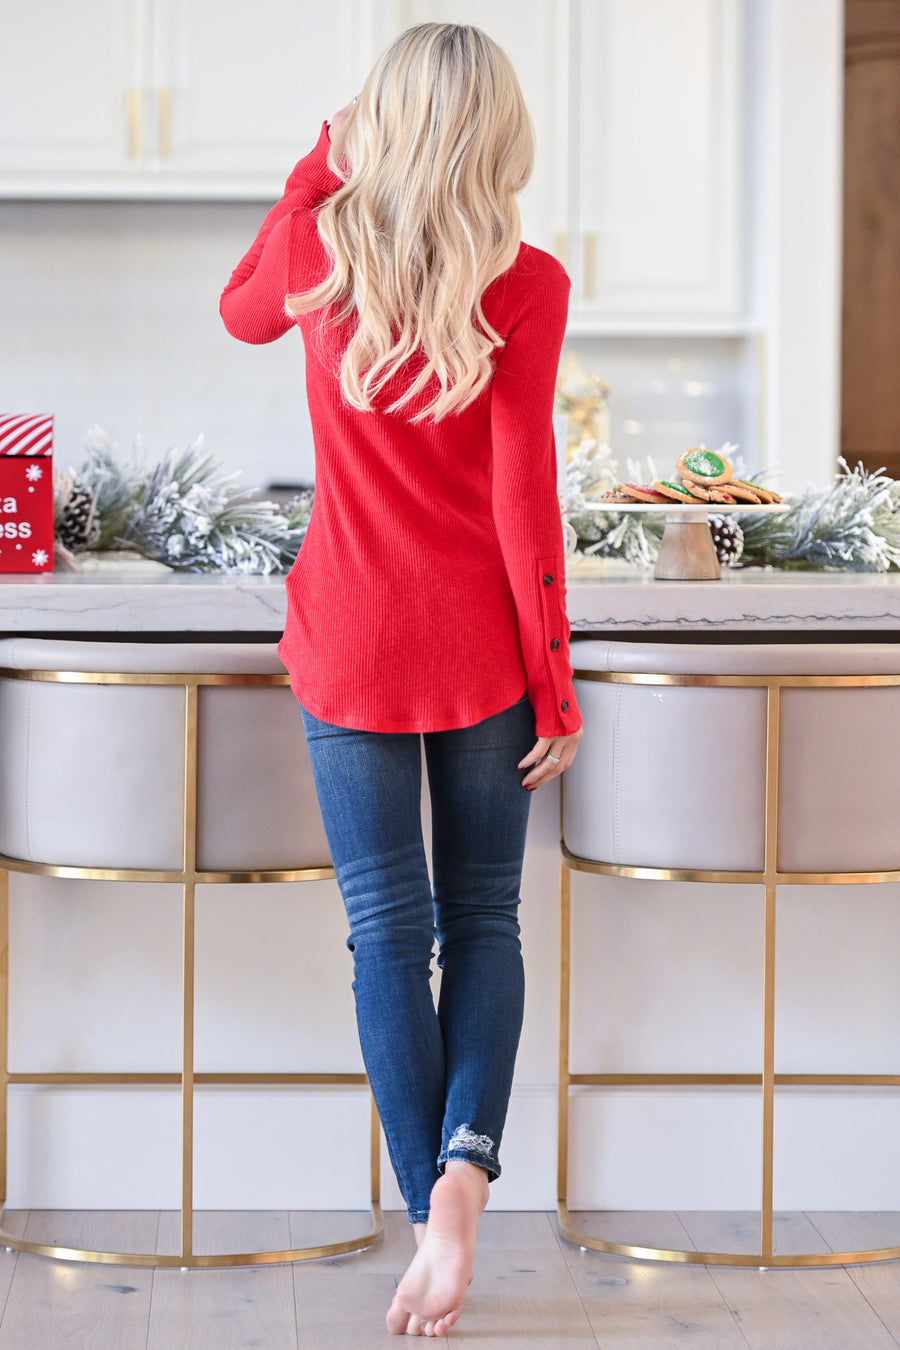 Cappuccino Crush Knit Top - Red mock neck ribbed knit long sleeve, closet candy boutique 1